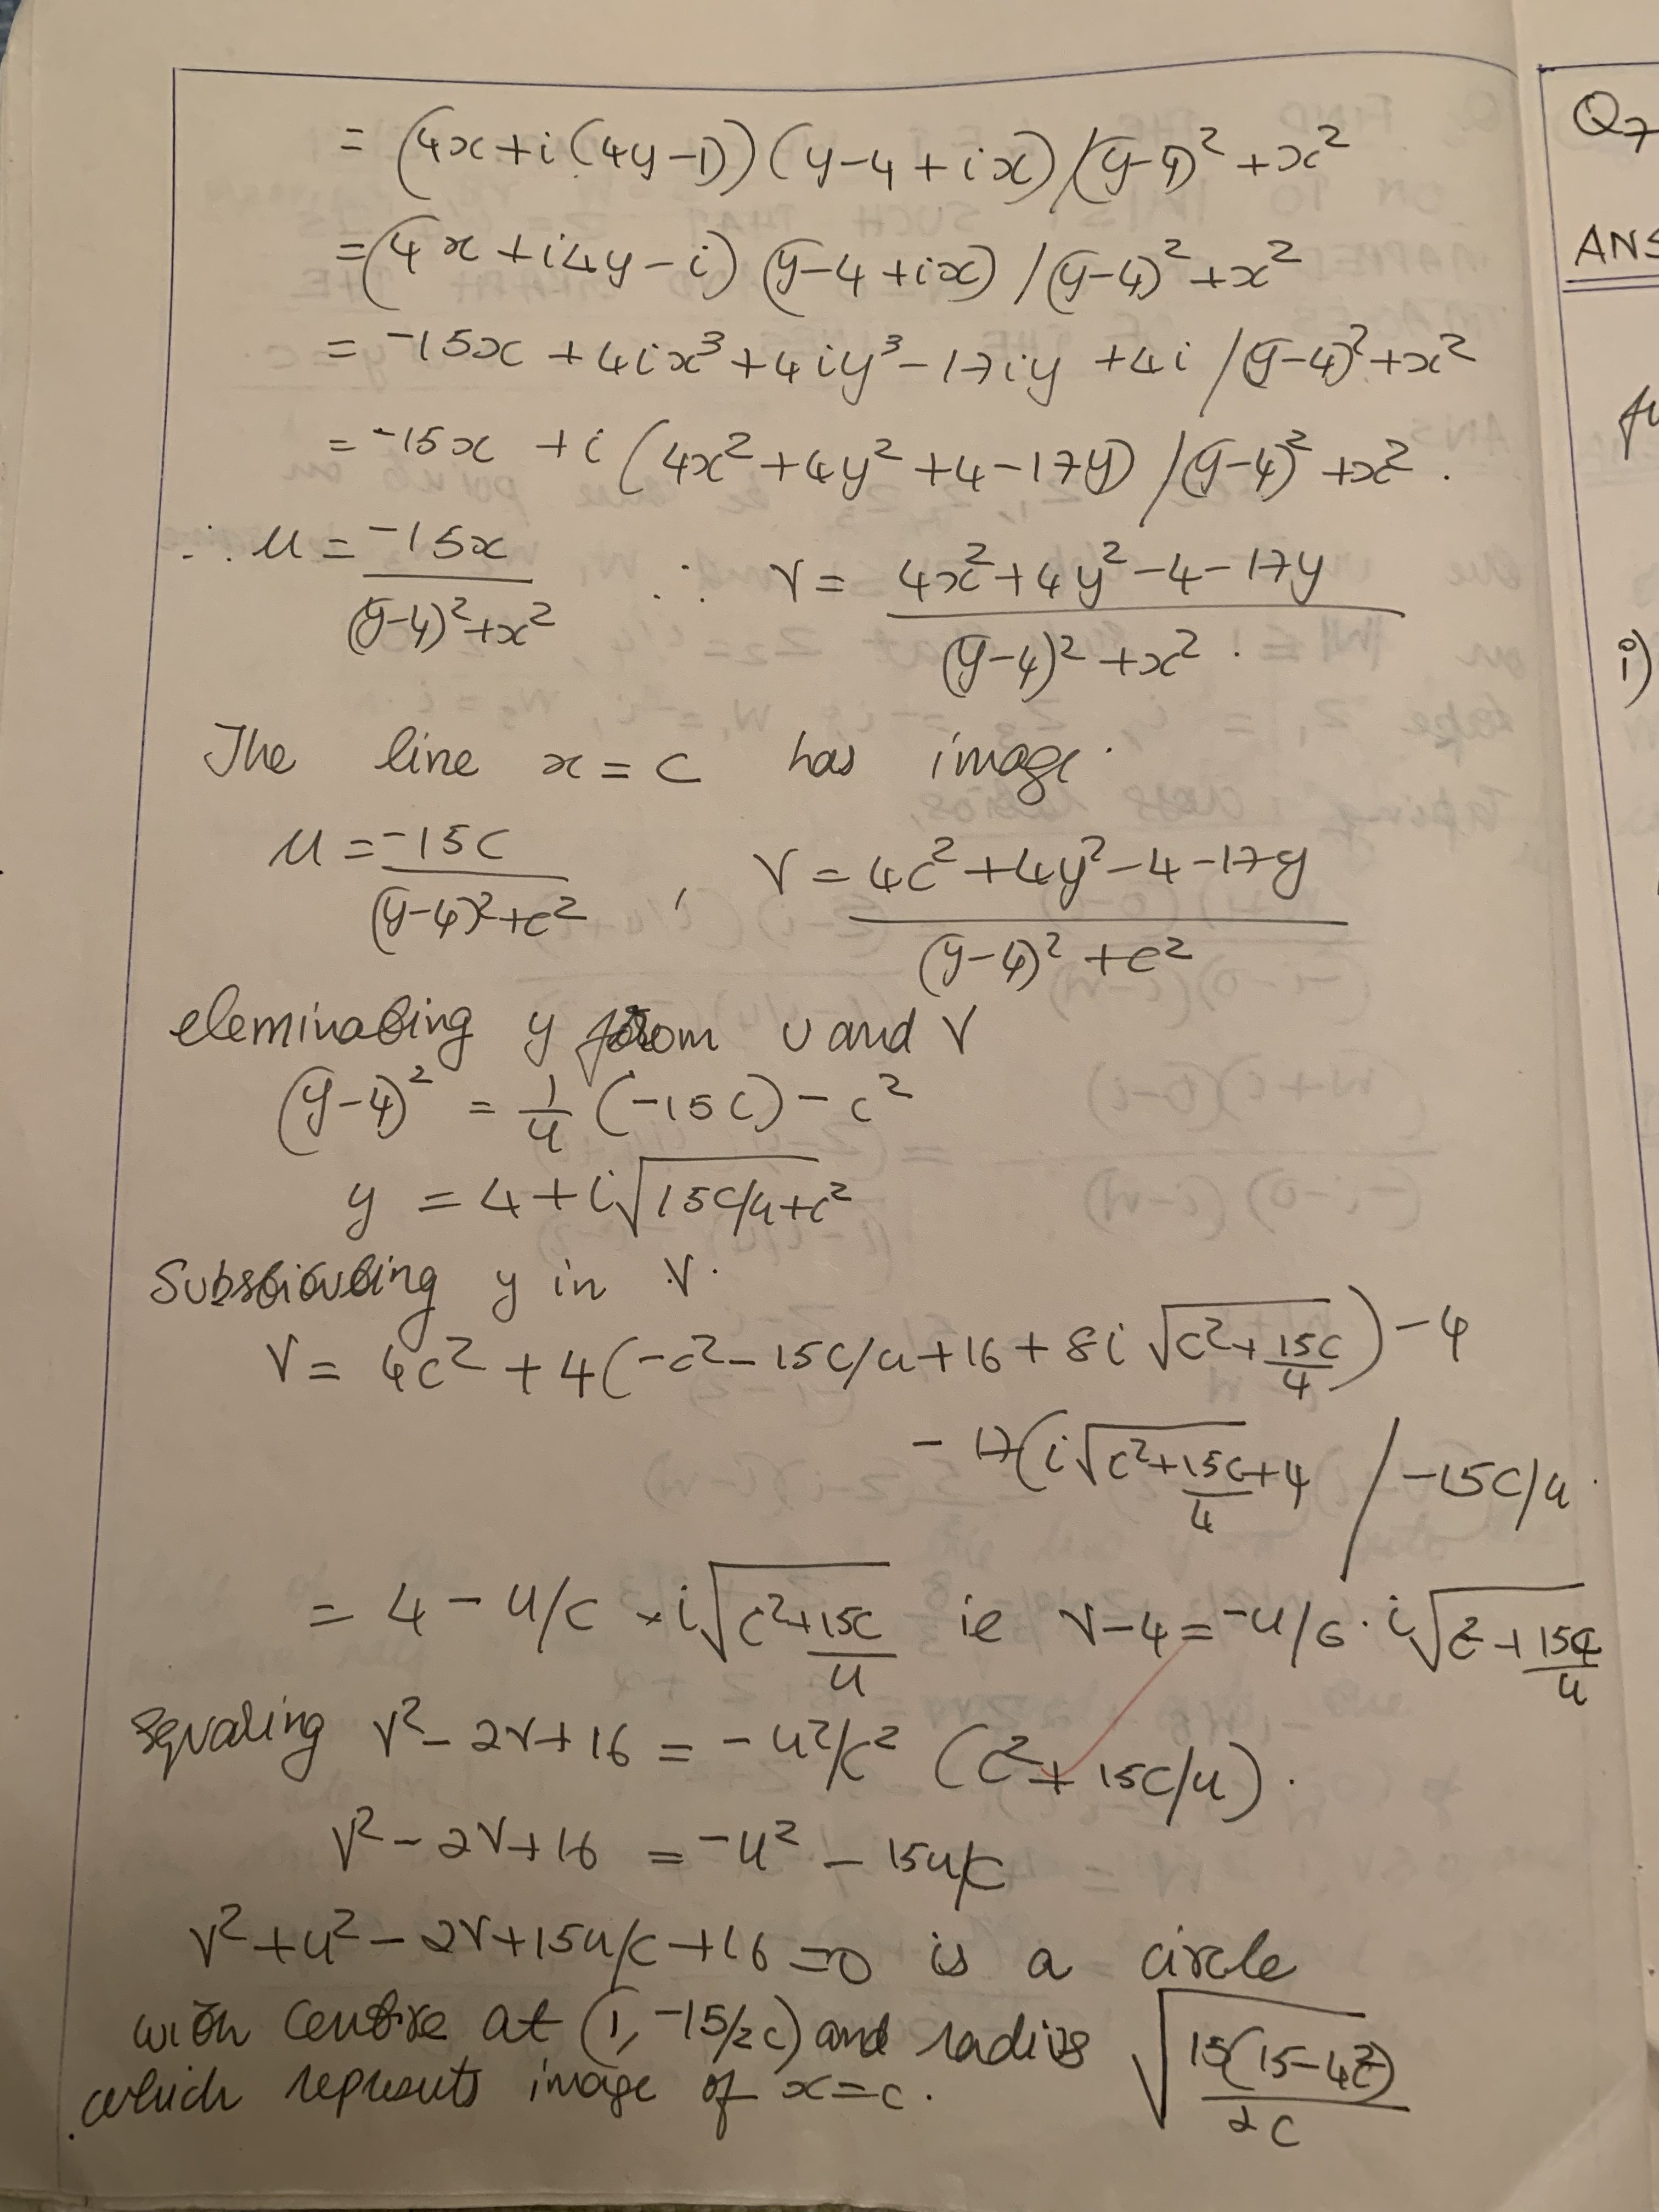 Finding Linear Fractional Transformation